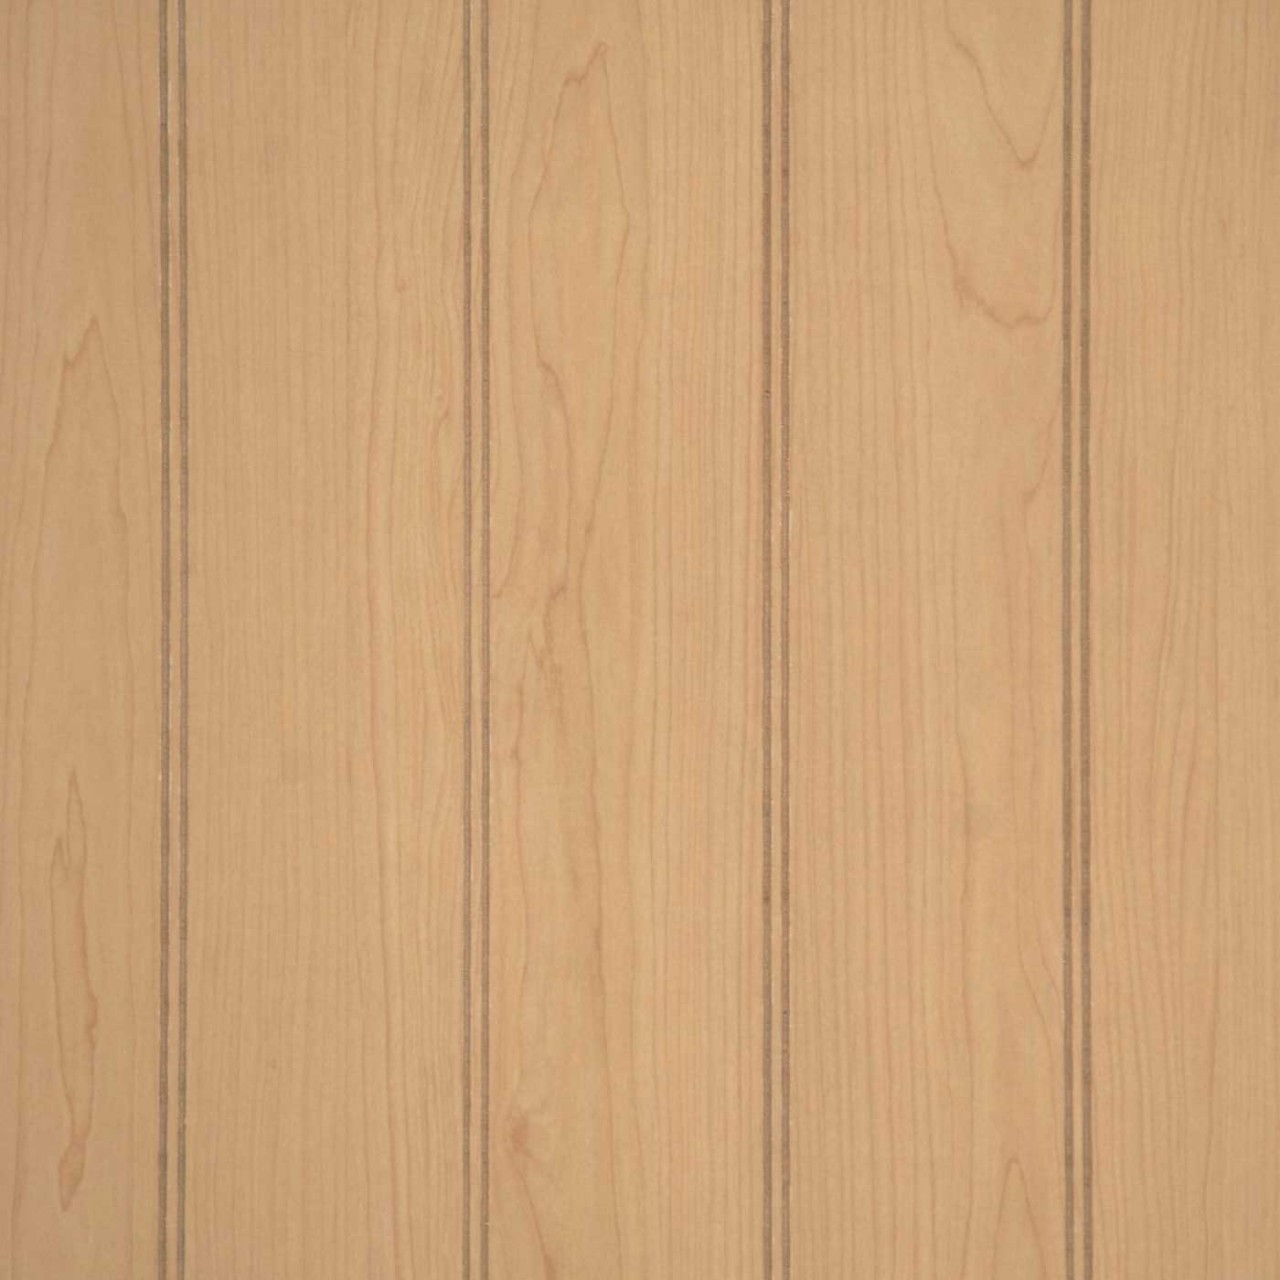 Wall Paneling 4 Quot Wide Beadboard 3 6mm Ultra Maple